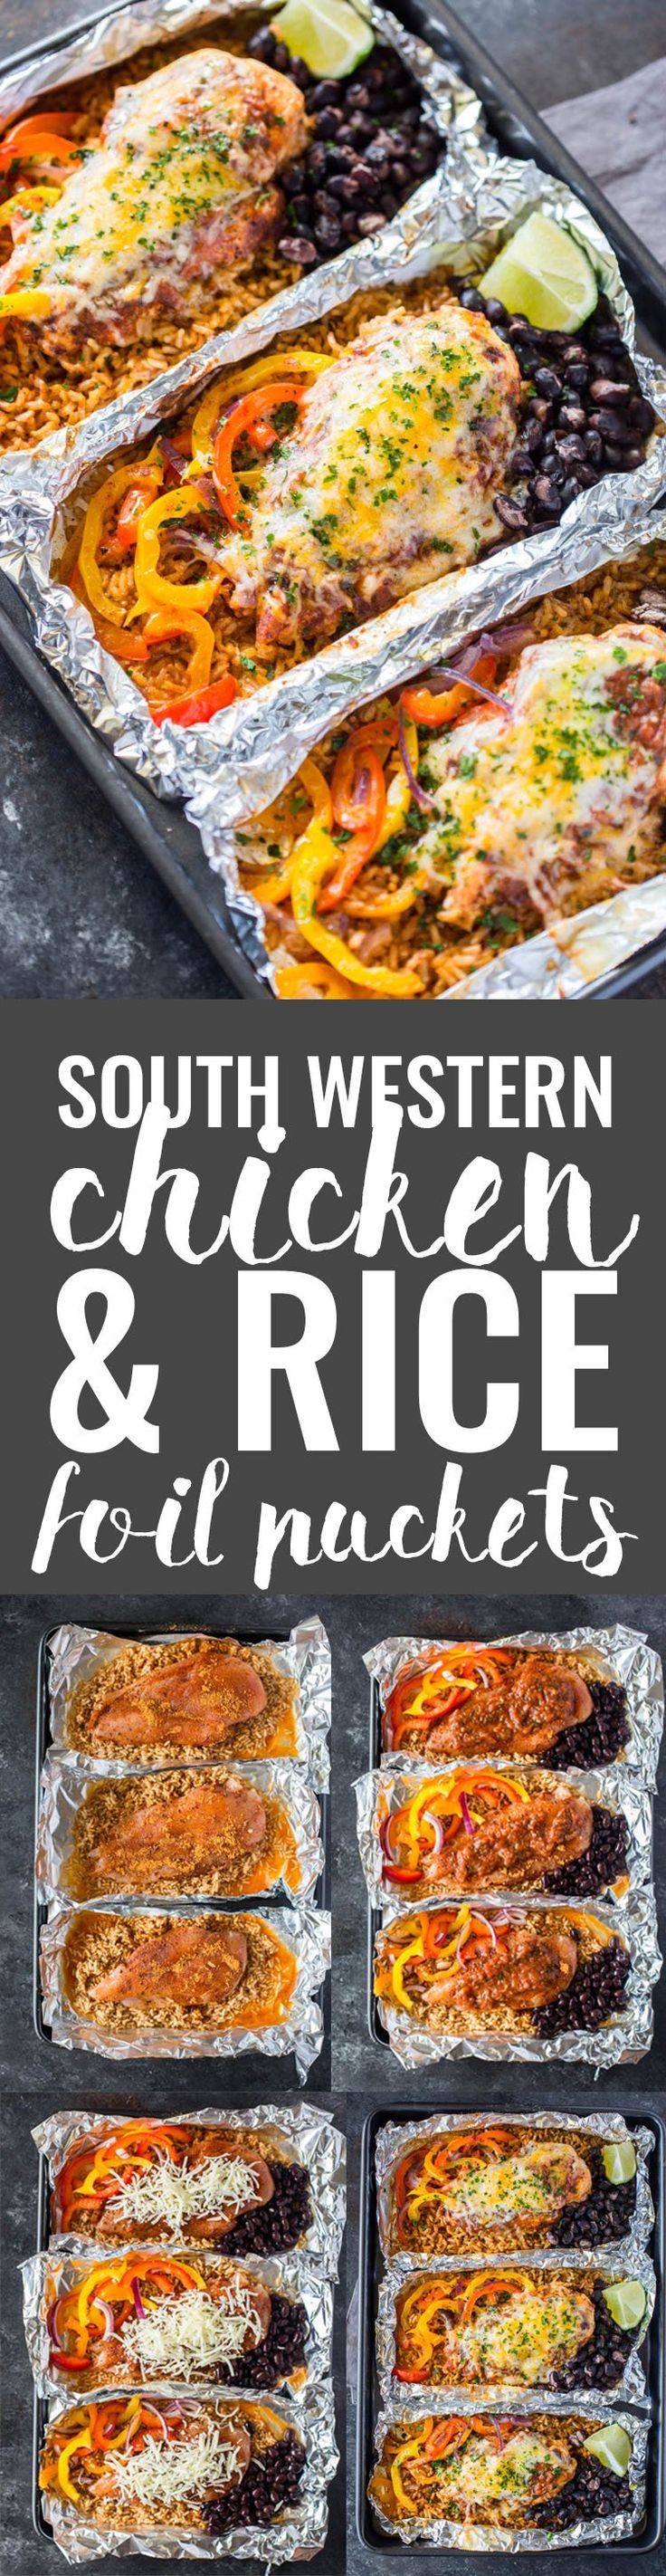 Southwestern Chicken Rice Foil Packets